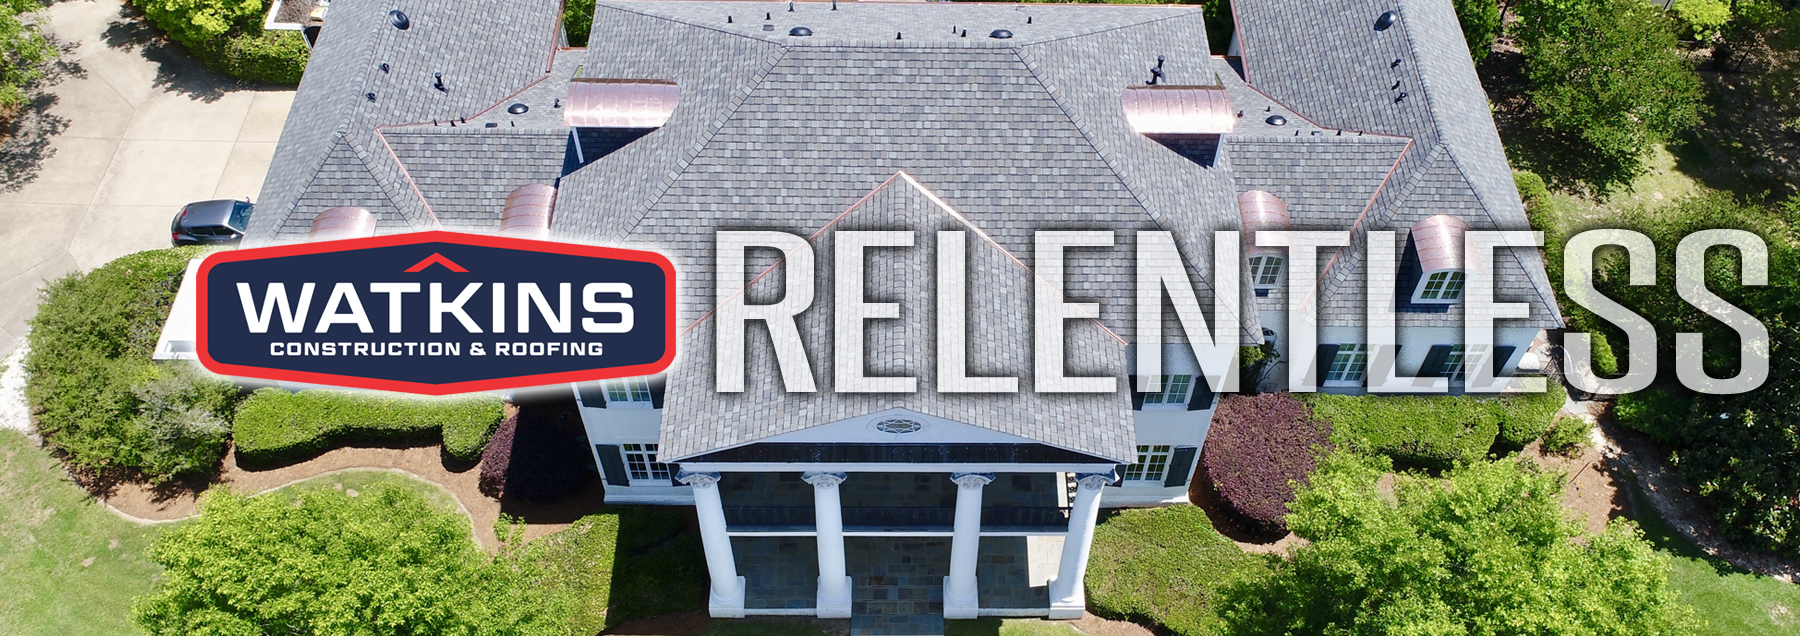 Watkins Construction & Roofing reviews | Gutter Services at 1072 High St. - Jackson MS